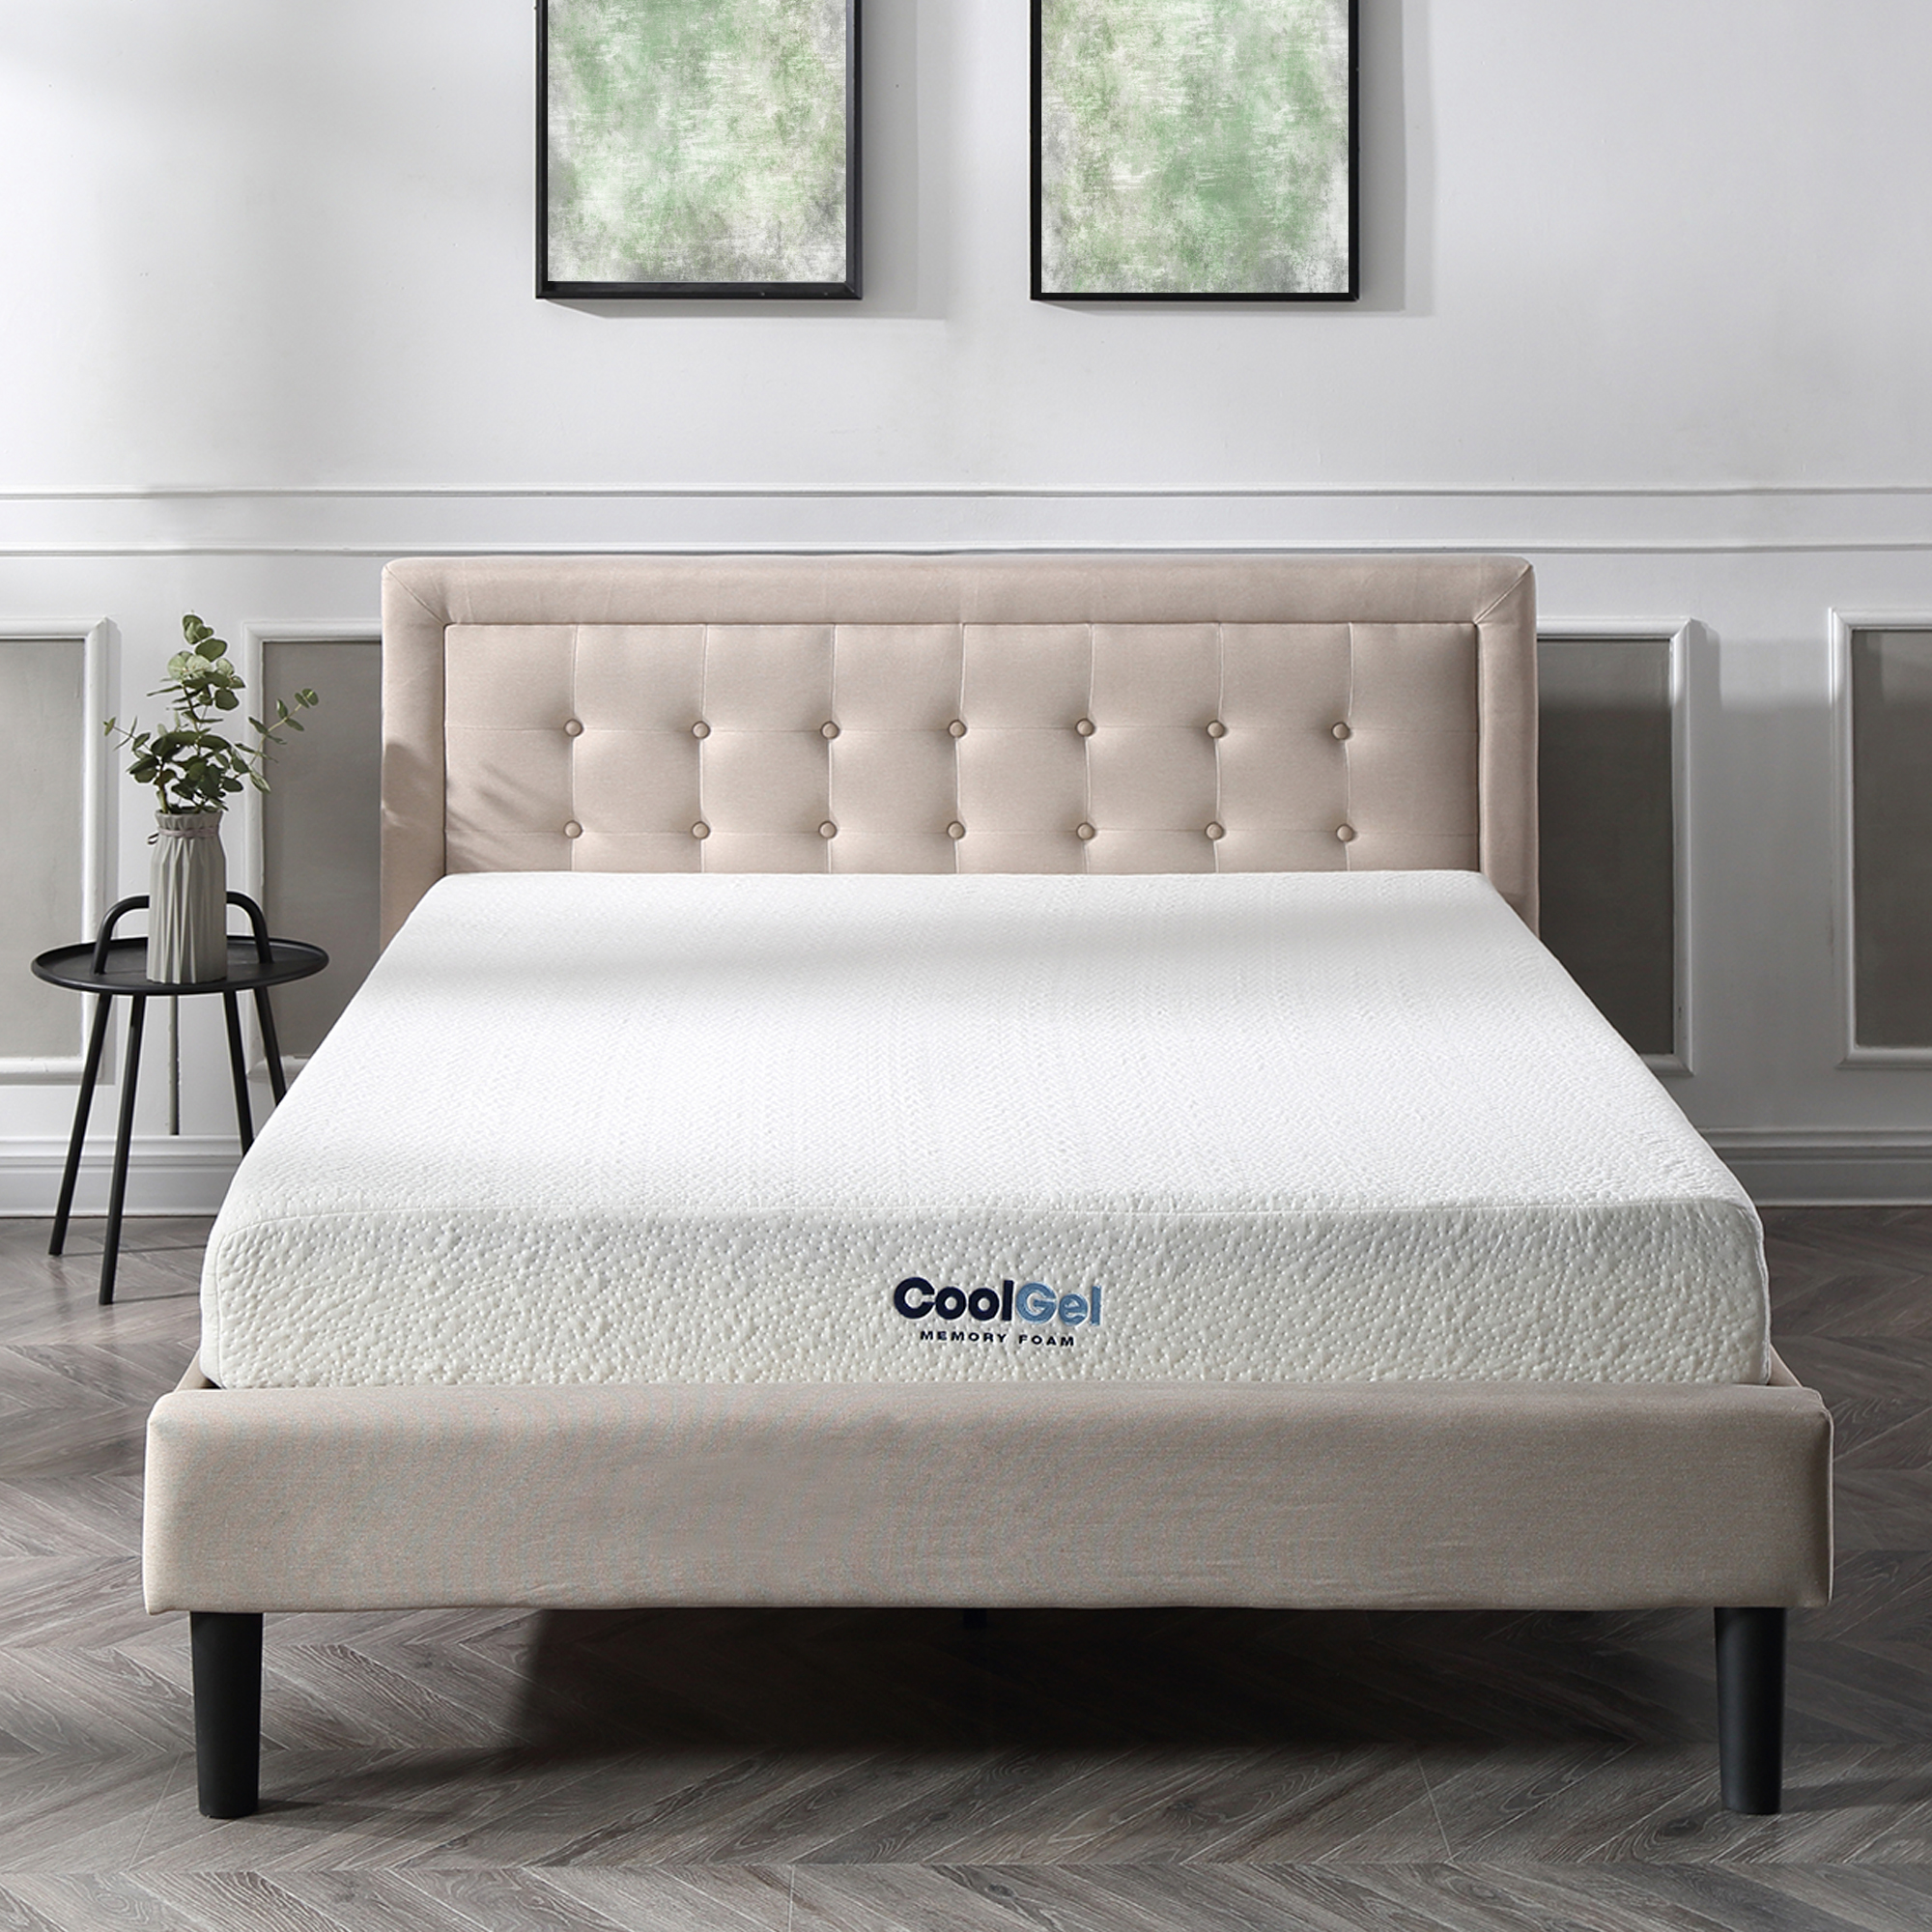 Modern Sleep Cool Gel Ventilated Gel Memory Foam 8 Inch Mattress